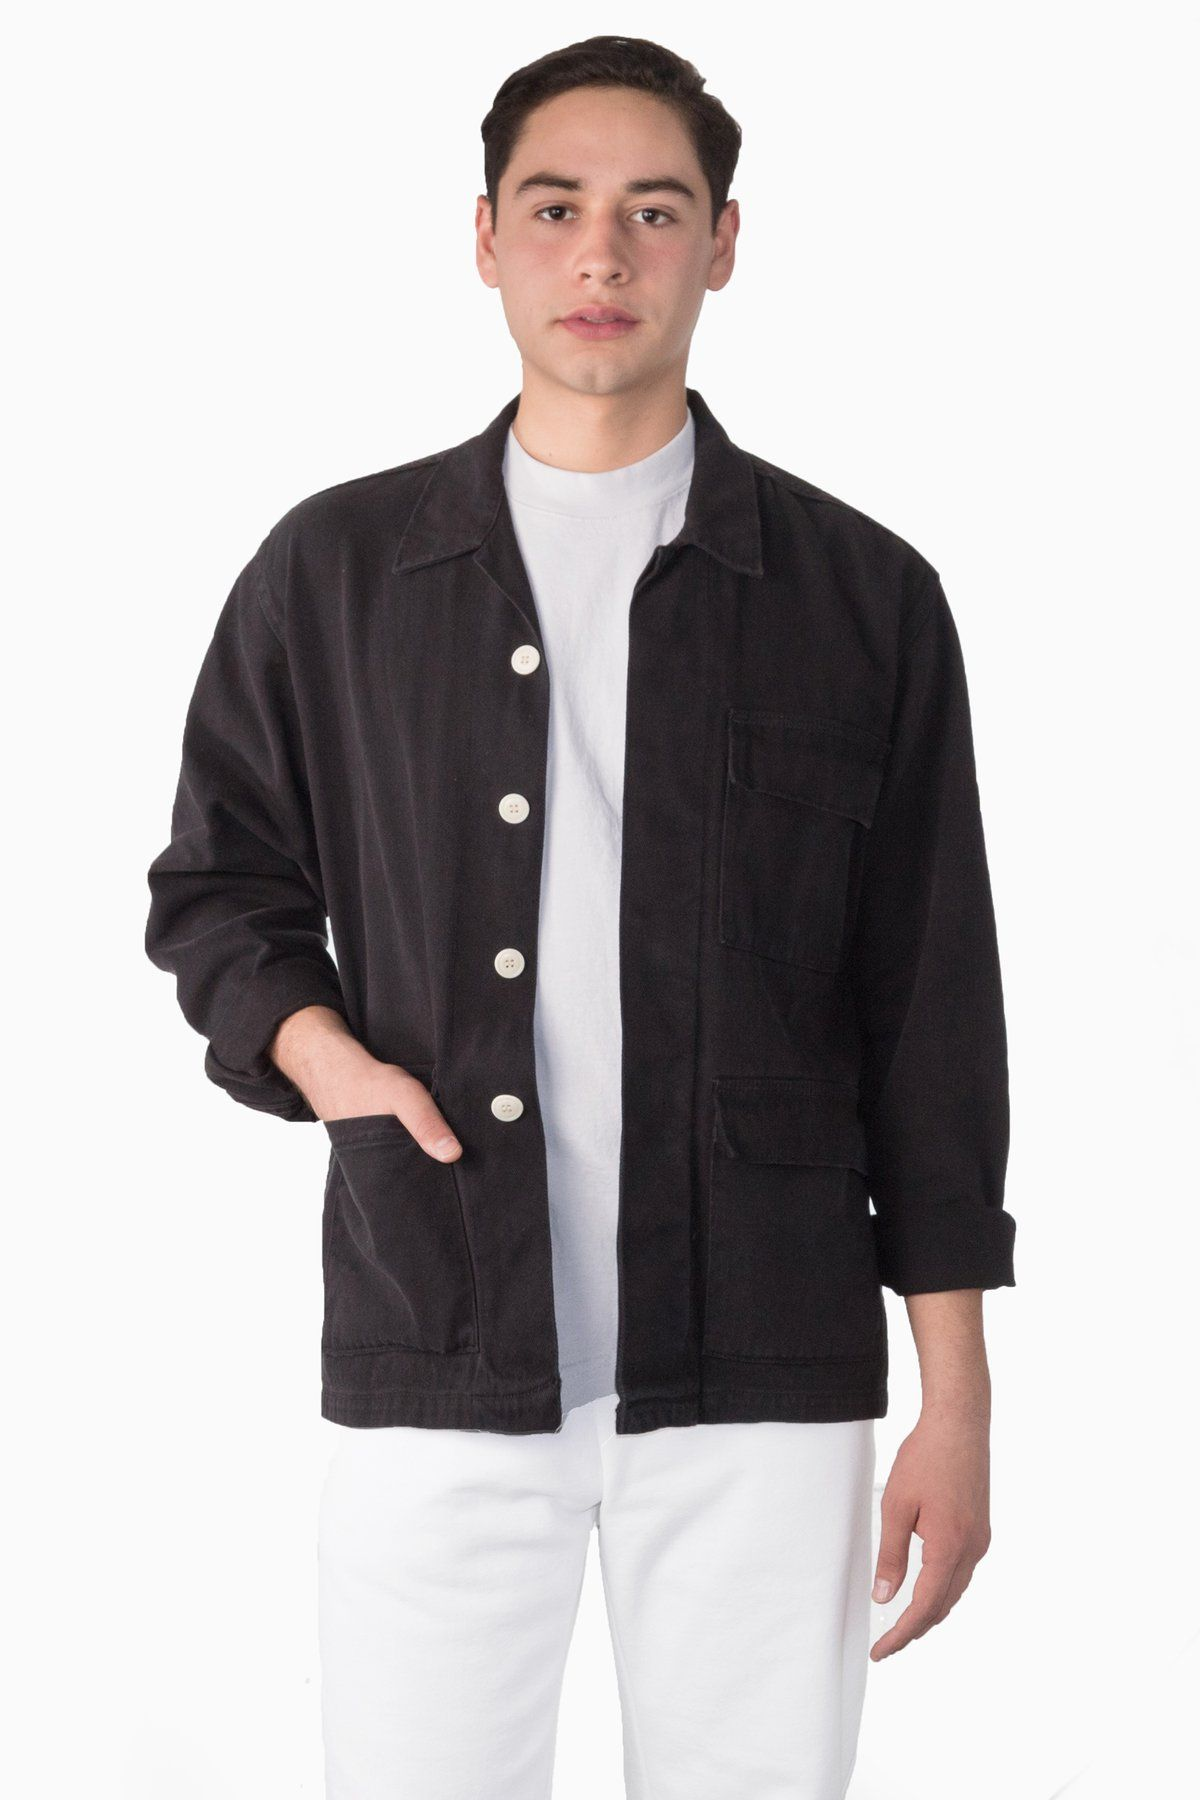 Rct400gd 10 Oz Twill Military Jacket Los Angeles Apparel Jackets Military Jacket Twill